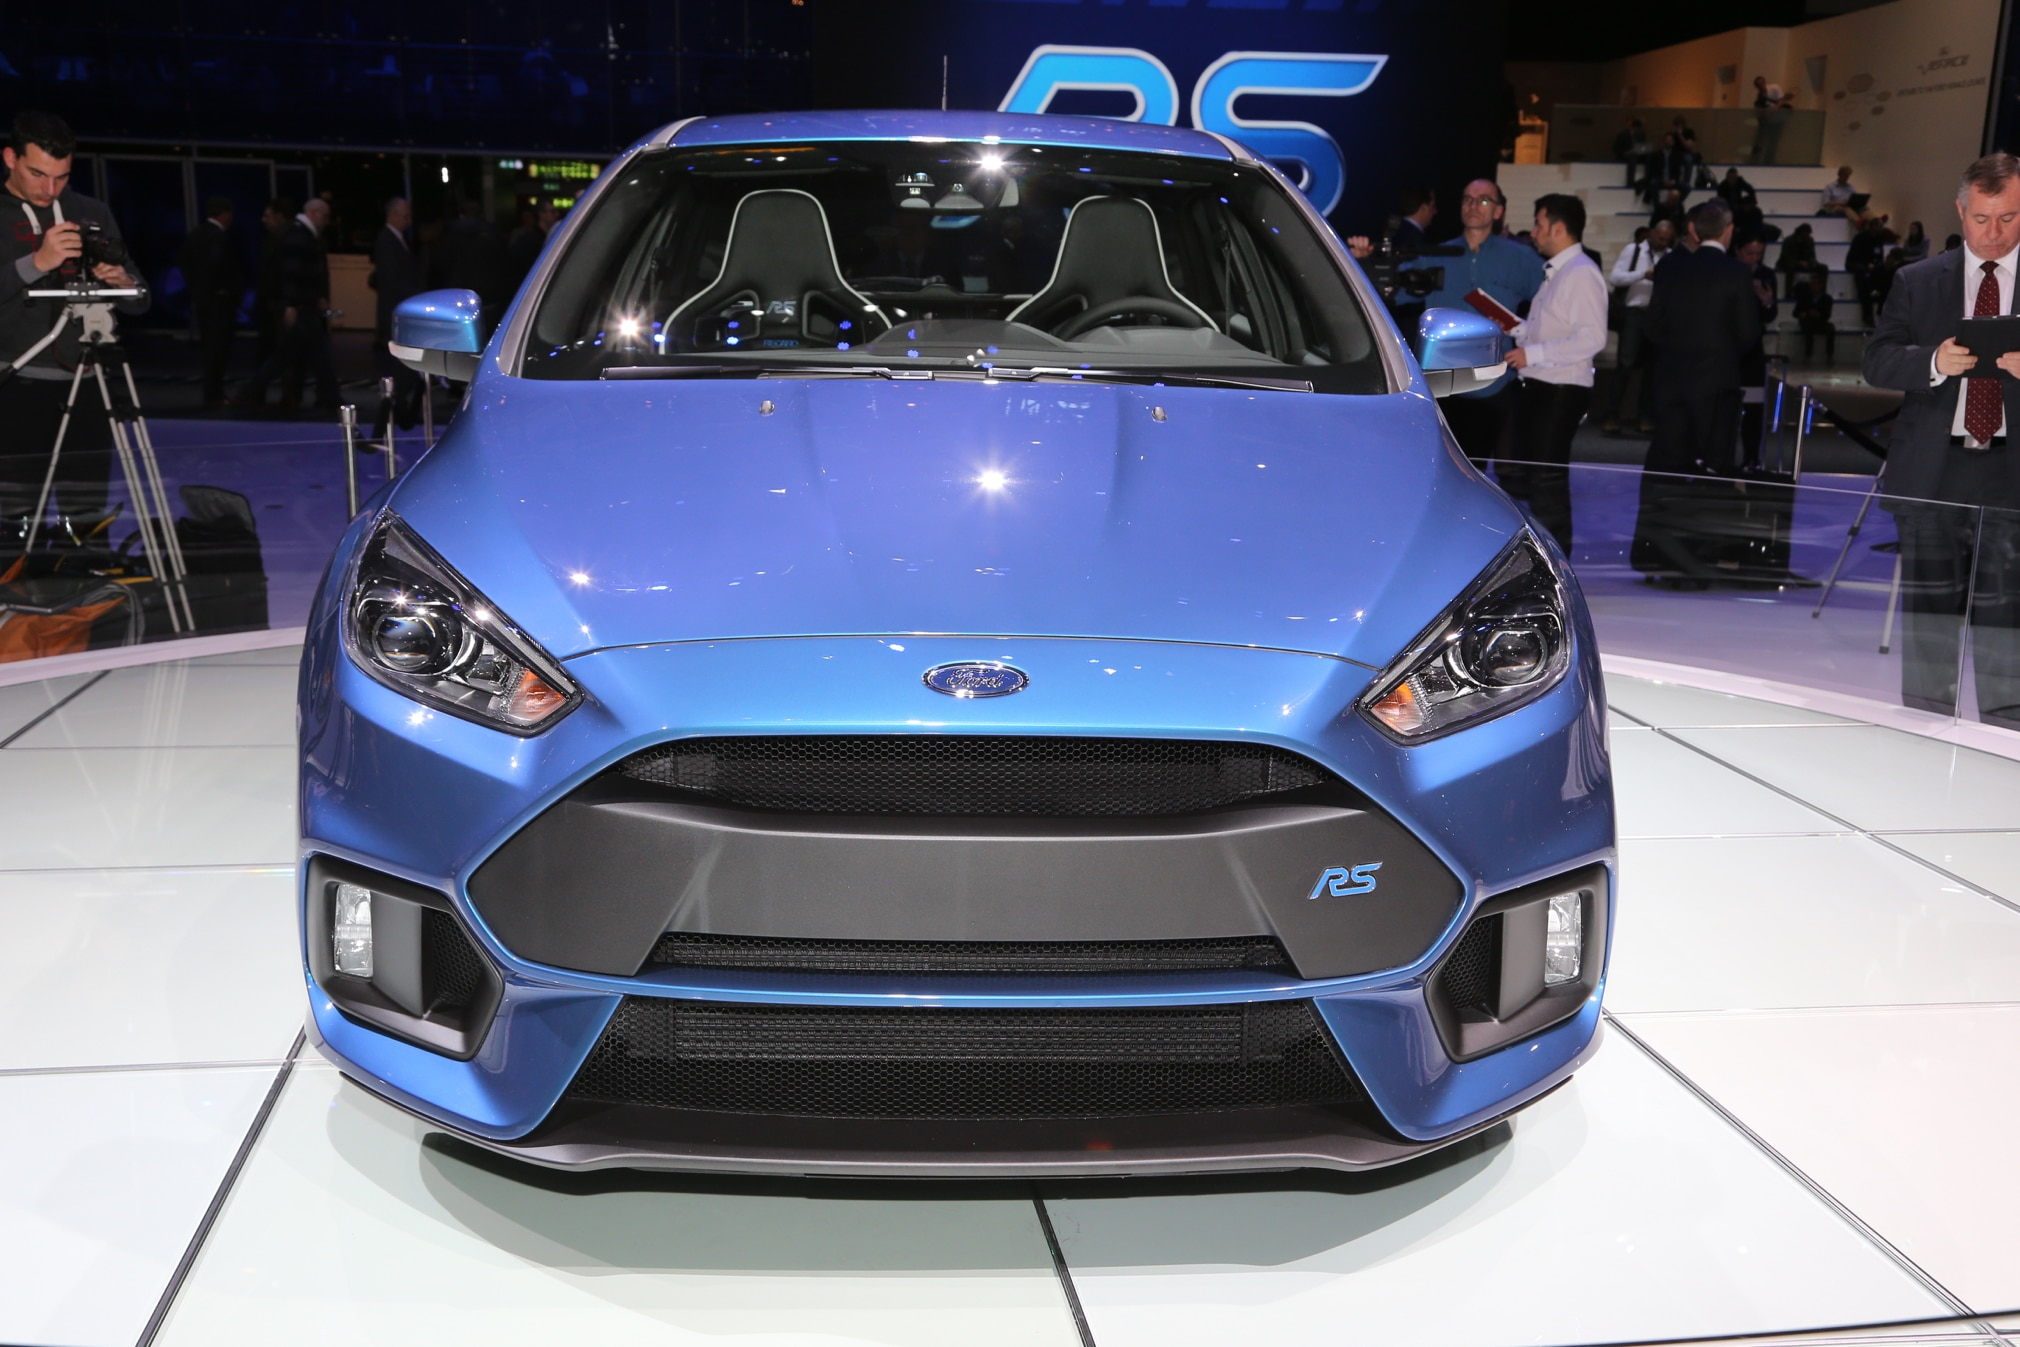 ford performance vehicles to feature new focus rs awd system. Black Bedroom Furniture Sets. Home Design Ideas